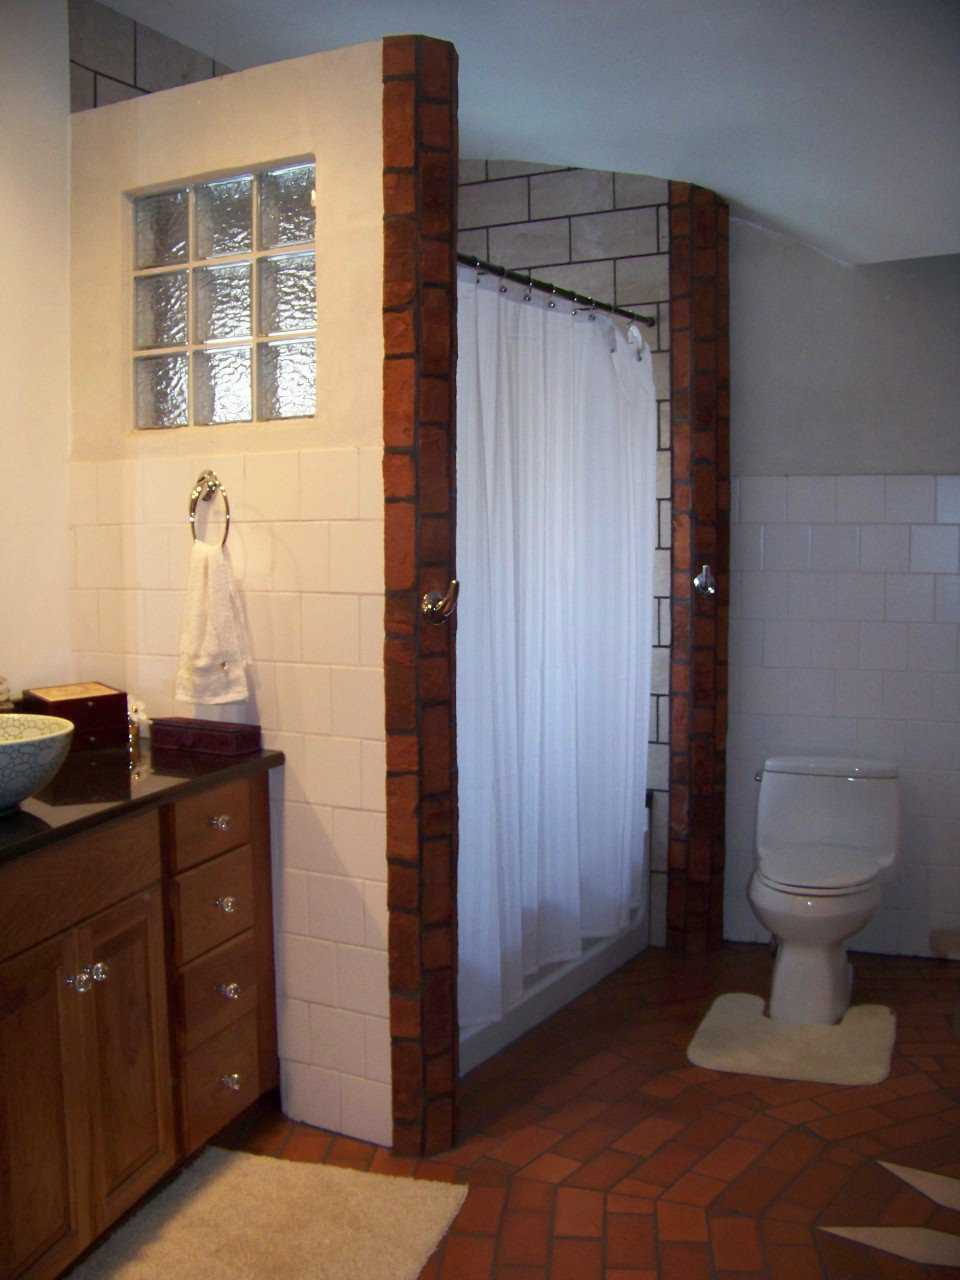 Tile shower — This bathroom sports tile walls and a brick floor with an eye-catching design.